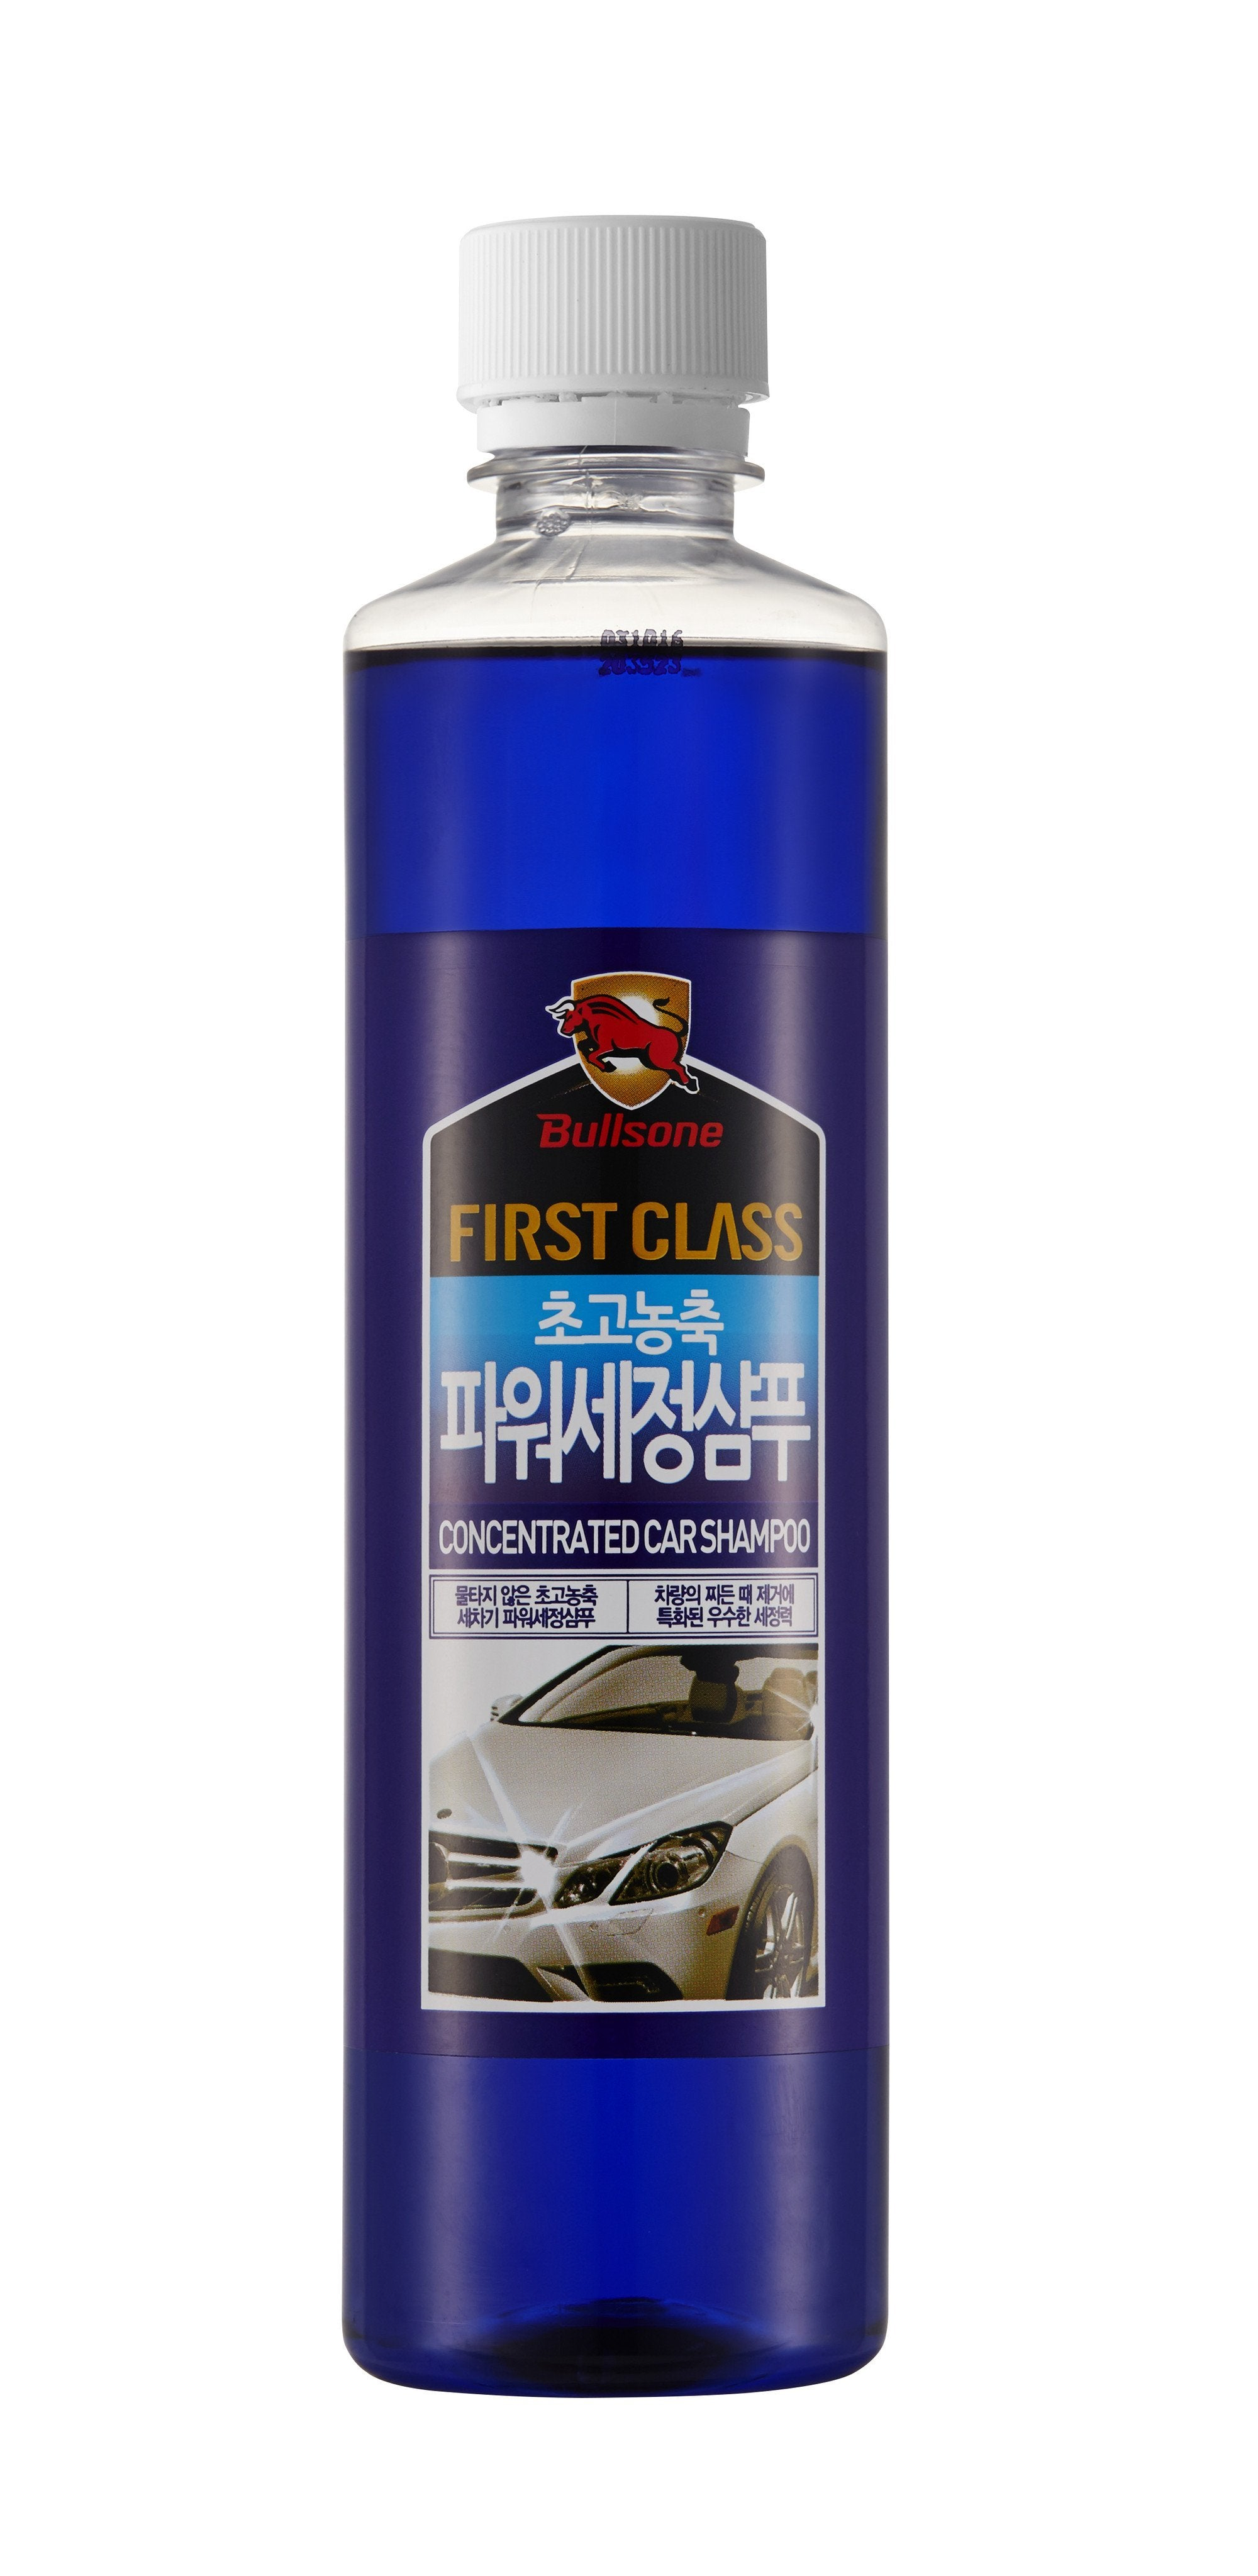 https://cdn.shopify.com/s/files/1/0723/4723/products/First_Class_High_Concentrated_for_Car_Washing_Shop_-_Car_Shampoo_500ml_16.91oz_Upgraded_Model.jpg?v=1501213412